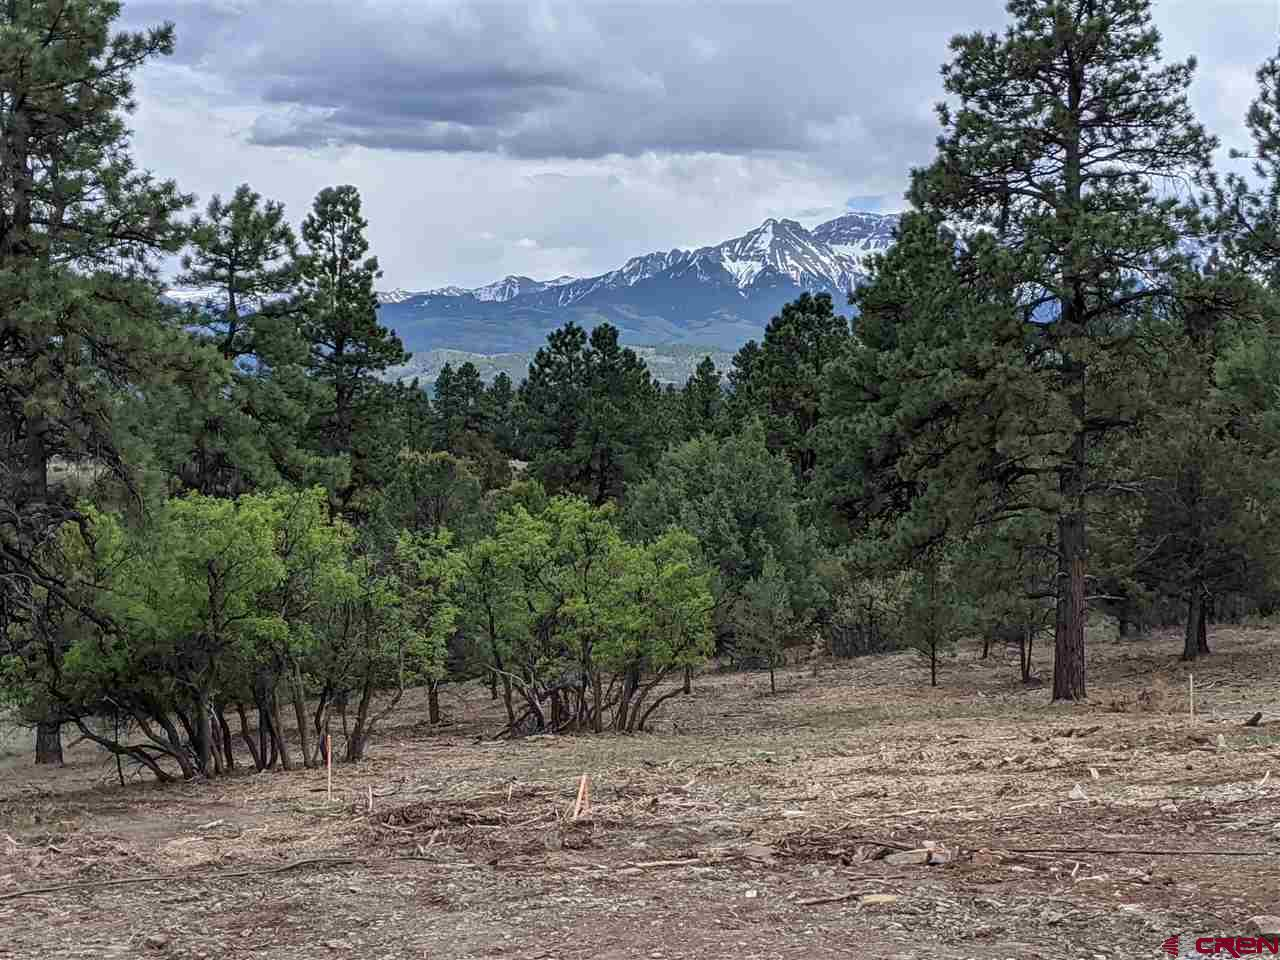 Just what you have been waiting for! Affordable and top quality construction in the Divide Ranch Golf Community in Log Hill, Near Ridgway Colorado. There are 4 house plans to choose from, each with different pricing and square footage.  There is an option for walk out basement instead of two story. Pricing begins at $399,900 and goes upward to  $695,000.  The Homes are finished with Granite or Quartz counter tops throughout, Partial Carpet and Vinyl Plank Flooring and Tile.  Stainless appliances including Refrigerator, Range/oven, Microwave, disposal and Dishwasher.  Exterior is Stucco/Stone.  There are a total of four units in this Planned Unit Development in The Divide Golf Community.  They have shared driveways between 2 homes.  Each Home has its own septic and it is Dallas Creek Water.    There are excellent Mountain views and some views of the golf course.  There is a golf Membership included with a transfer fee paid by the Buyer of $3,000 at closing.  The homes are completed within 7 months of Permit being issued.  Located is 10 min from Ridgway, 20 min to Ouray and The Hot springs, and 45 min to World class Skiing in Telluride and you can enjoy the Summer Season in alll of the same areas. Live and Play all year round living in the heart of the San Juan Mountains.